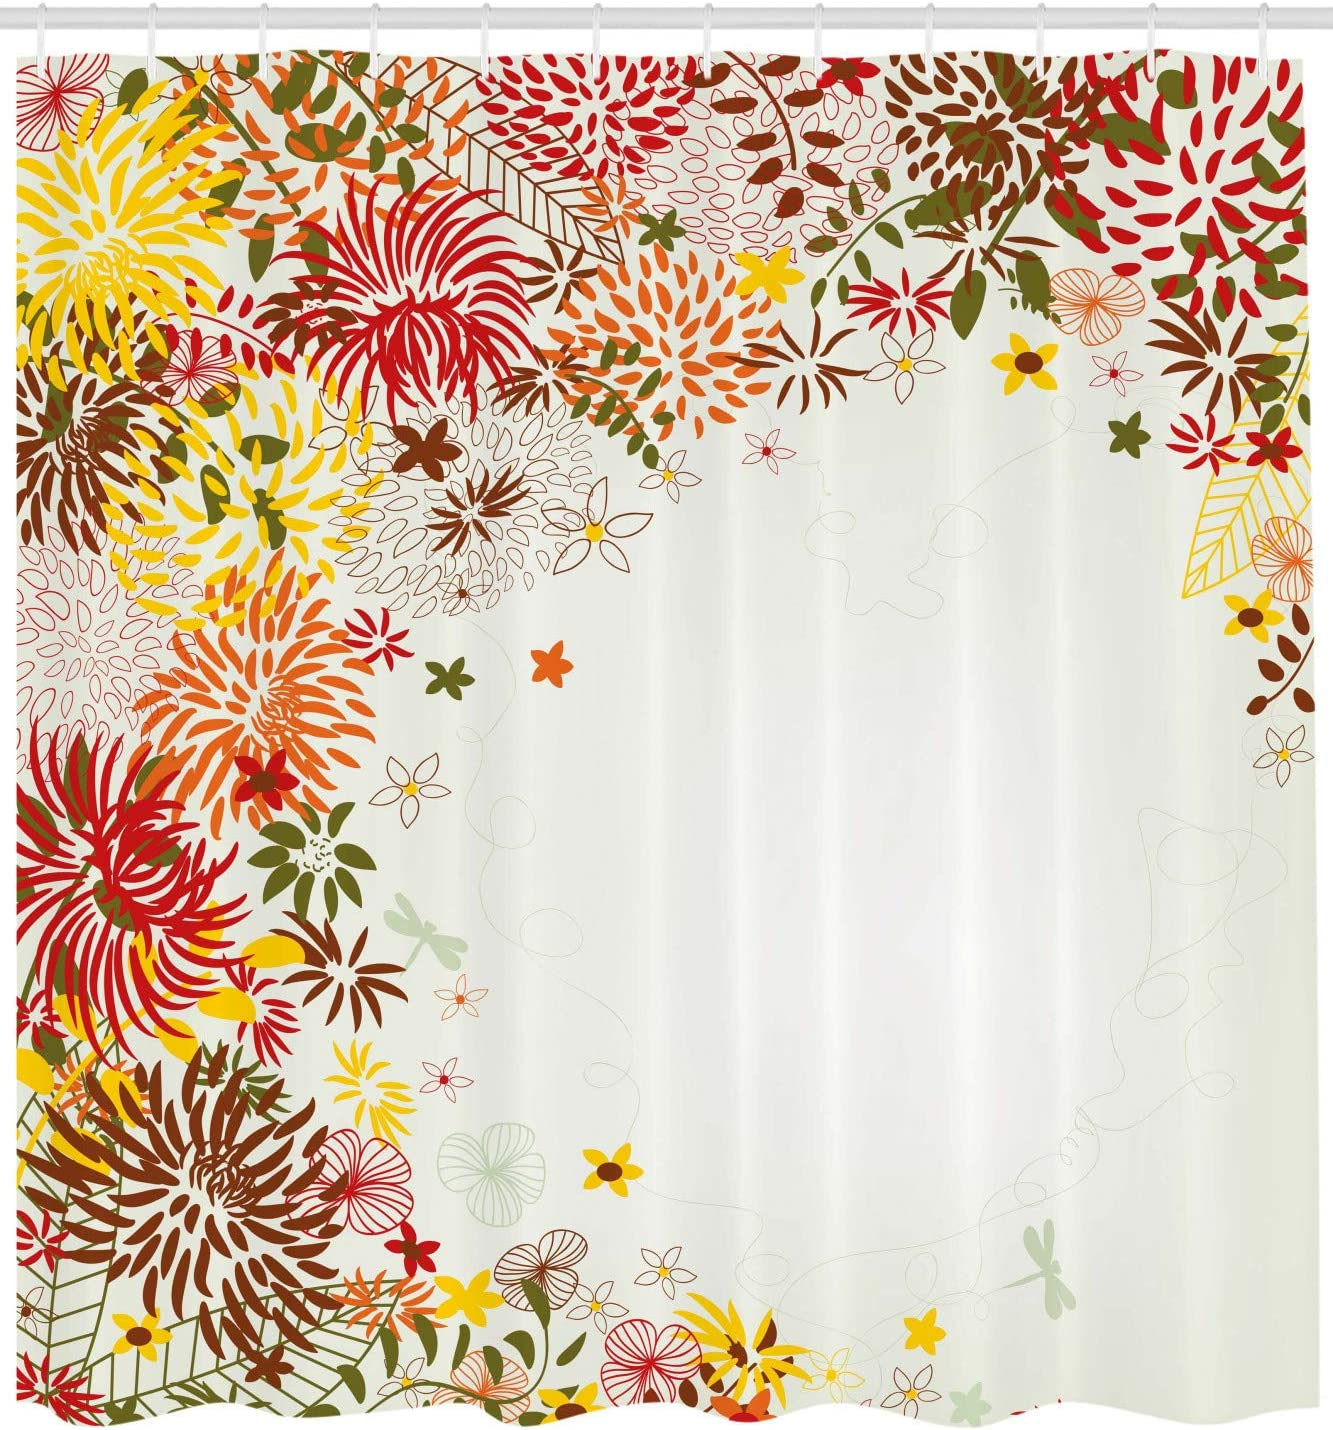 Light Pink and White Spring Season Floral Flower Details with Leaves Abstract Backdrop Ambesonne Shabby Chic Shower Curtain 70 Inches Fabric Bathroom Decor Set with Hooks